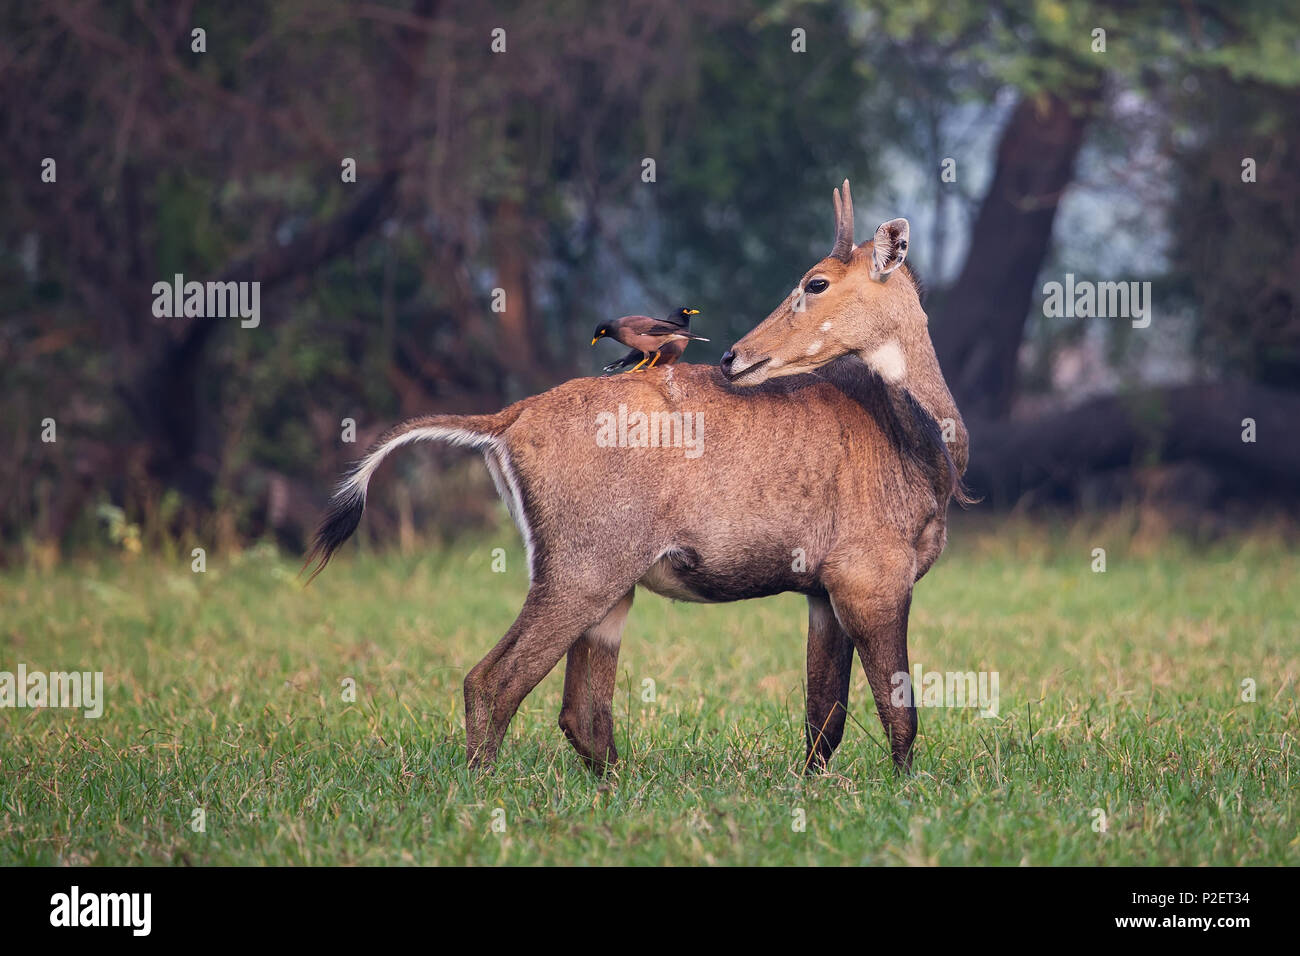 Male Nilgai with Brahminy mynas sitting on him in Keoladeo National Park, Bharatpur, India. Nilgai is the largest Asian antelope and is endemic to the - Stock Image